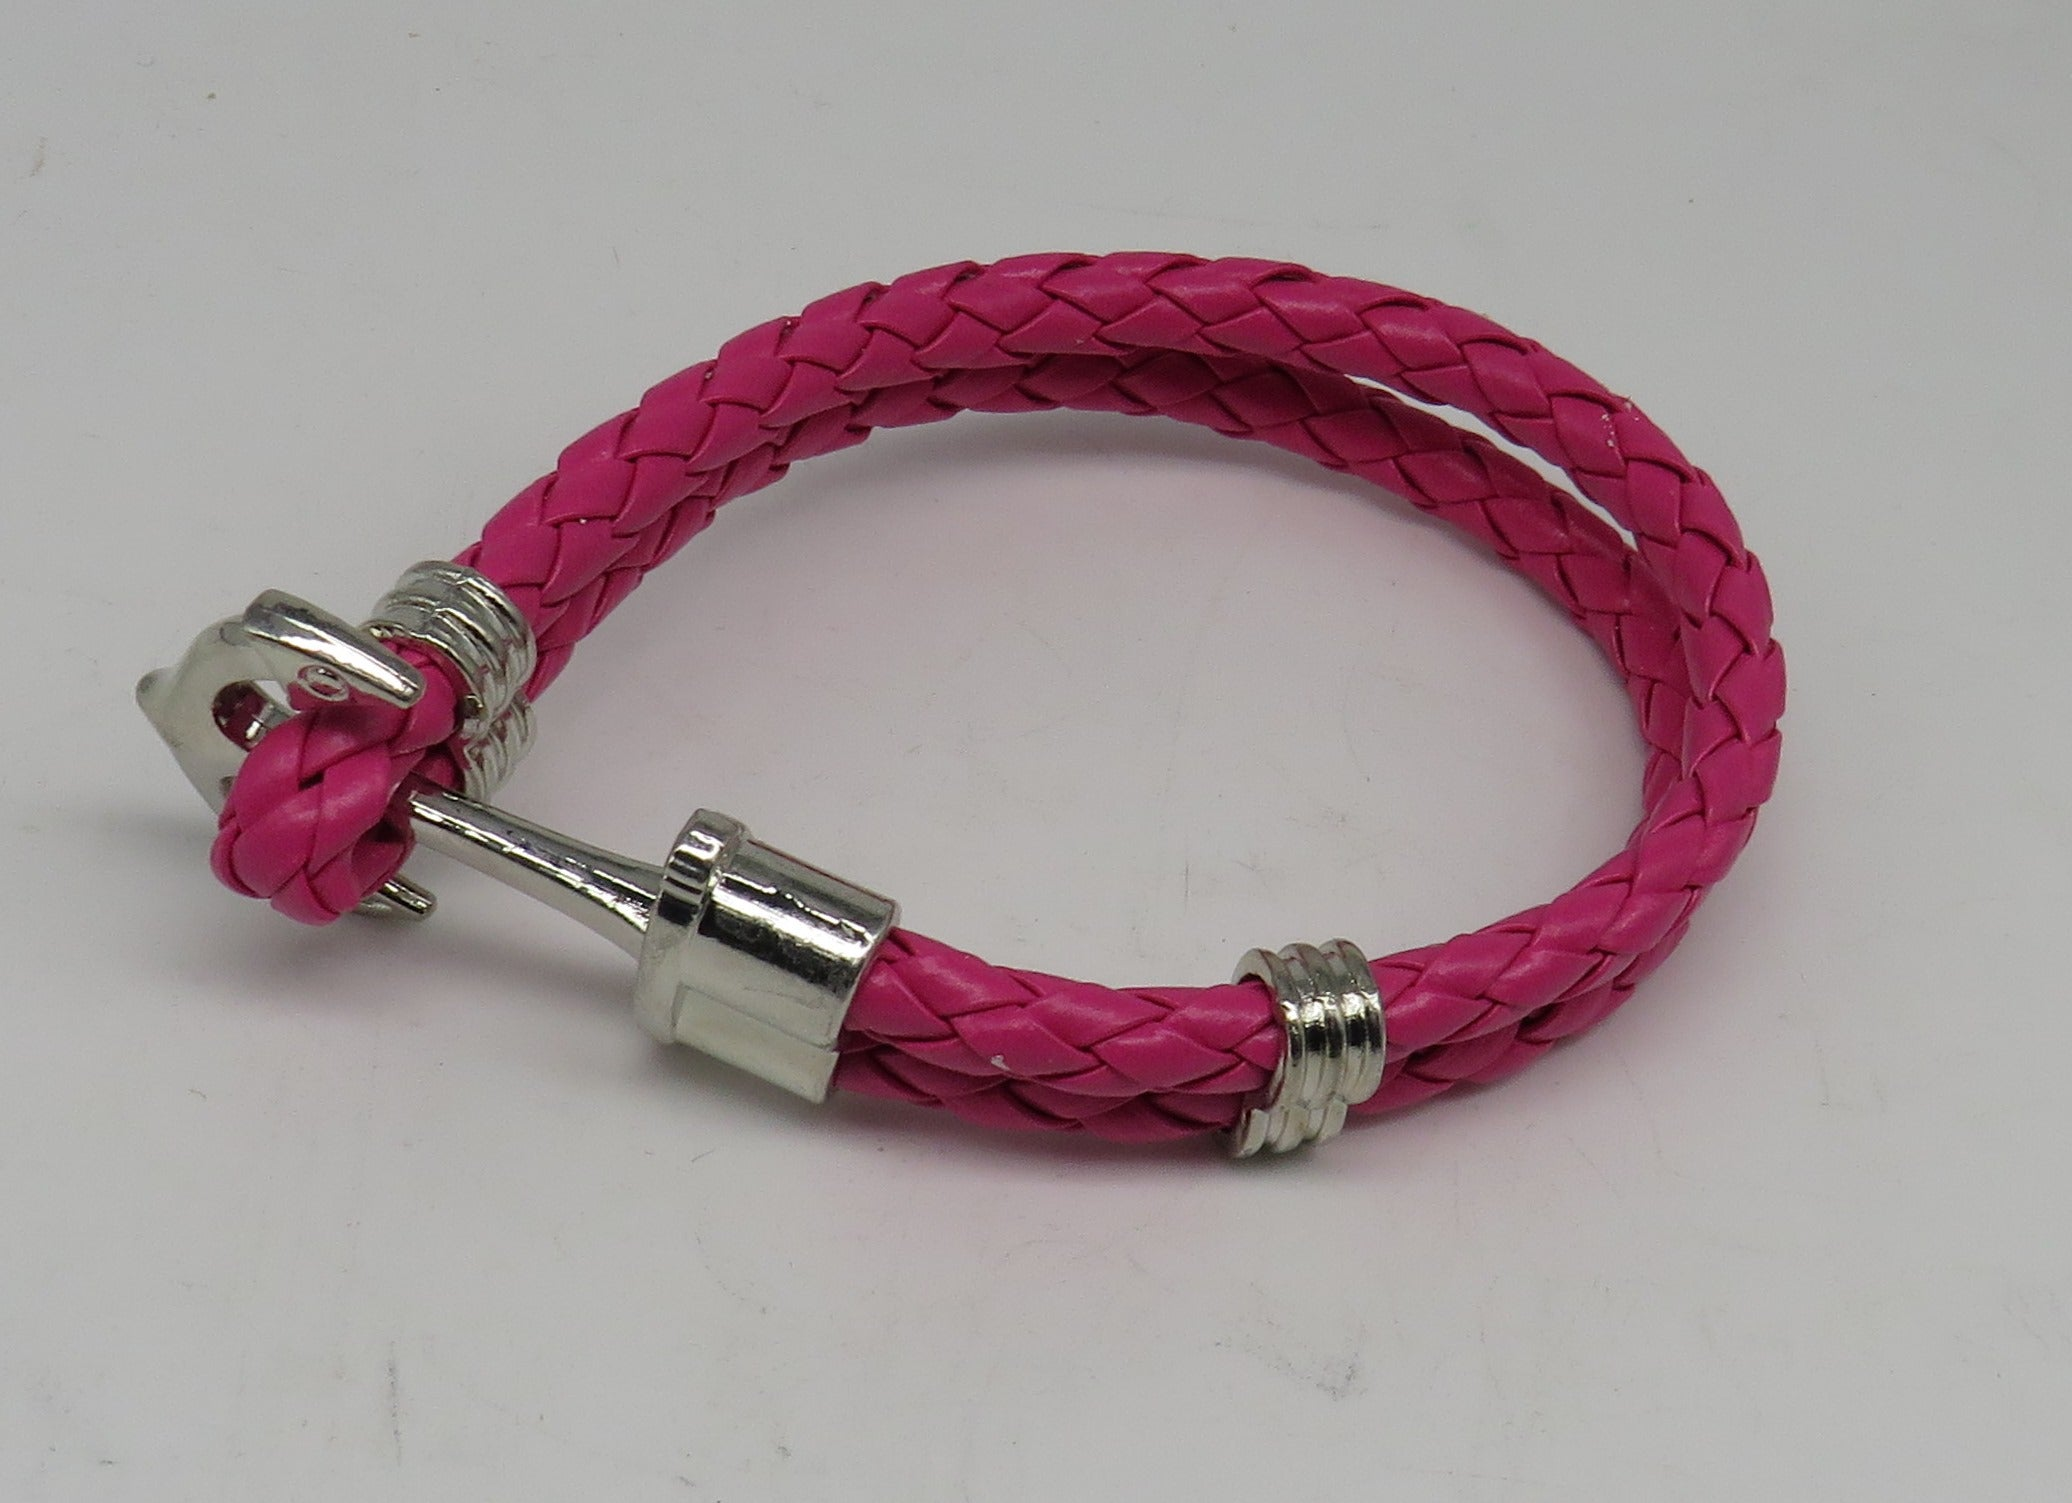 Unisex Leather Handmade Braided Cuff Anchor Bangle Bracelet Wristband Rose Red-Silver